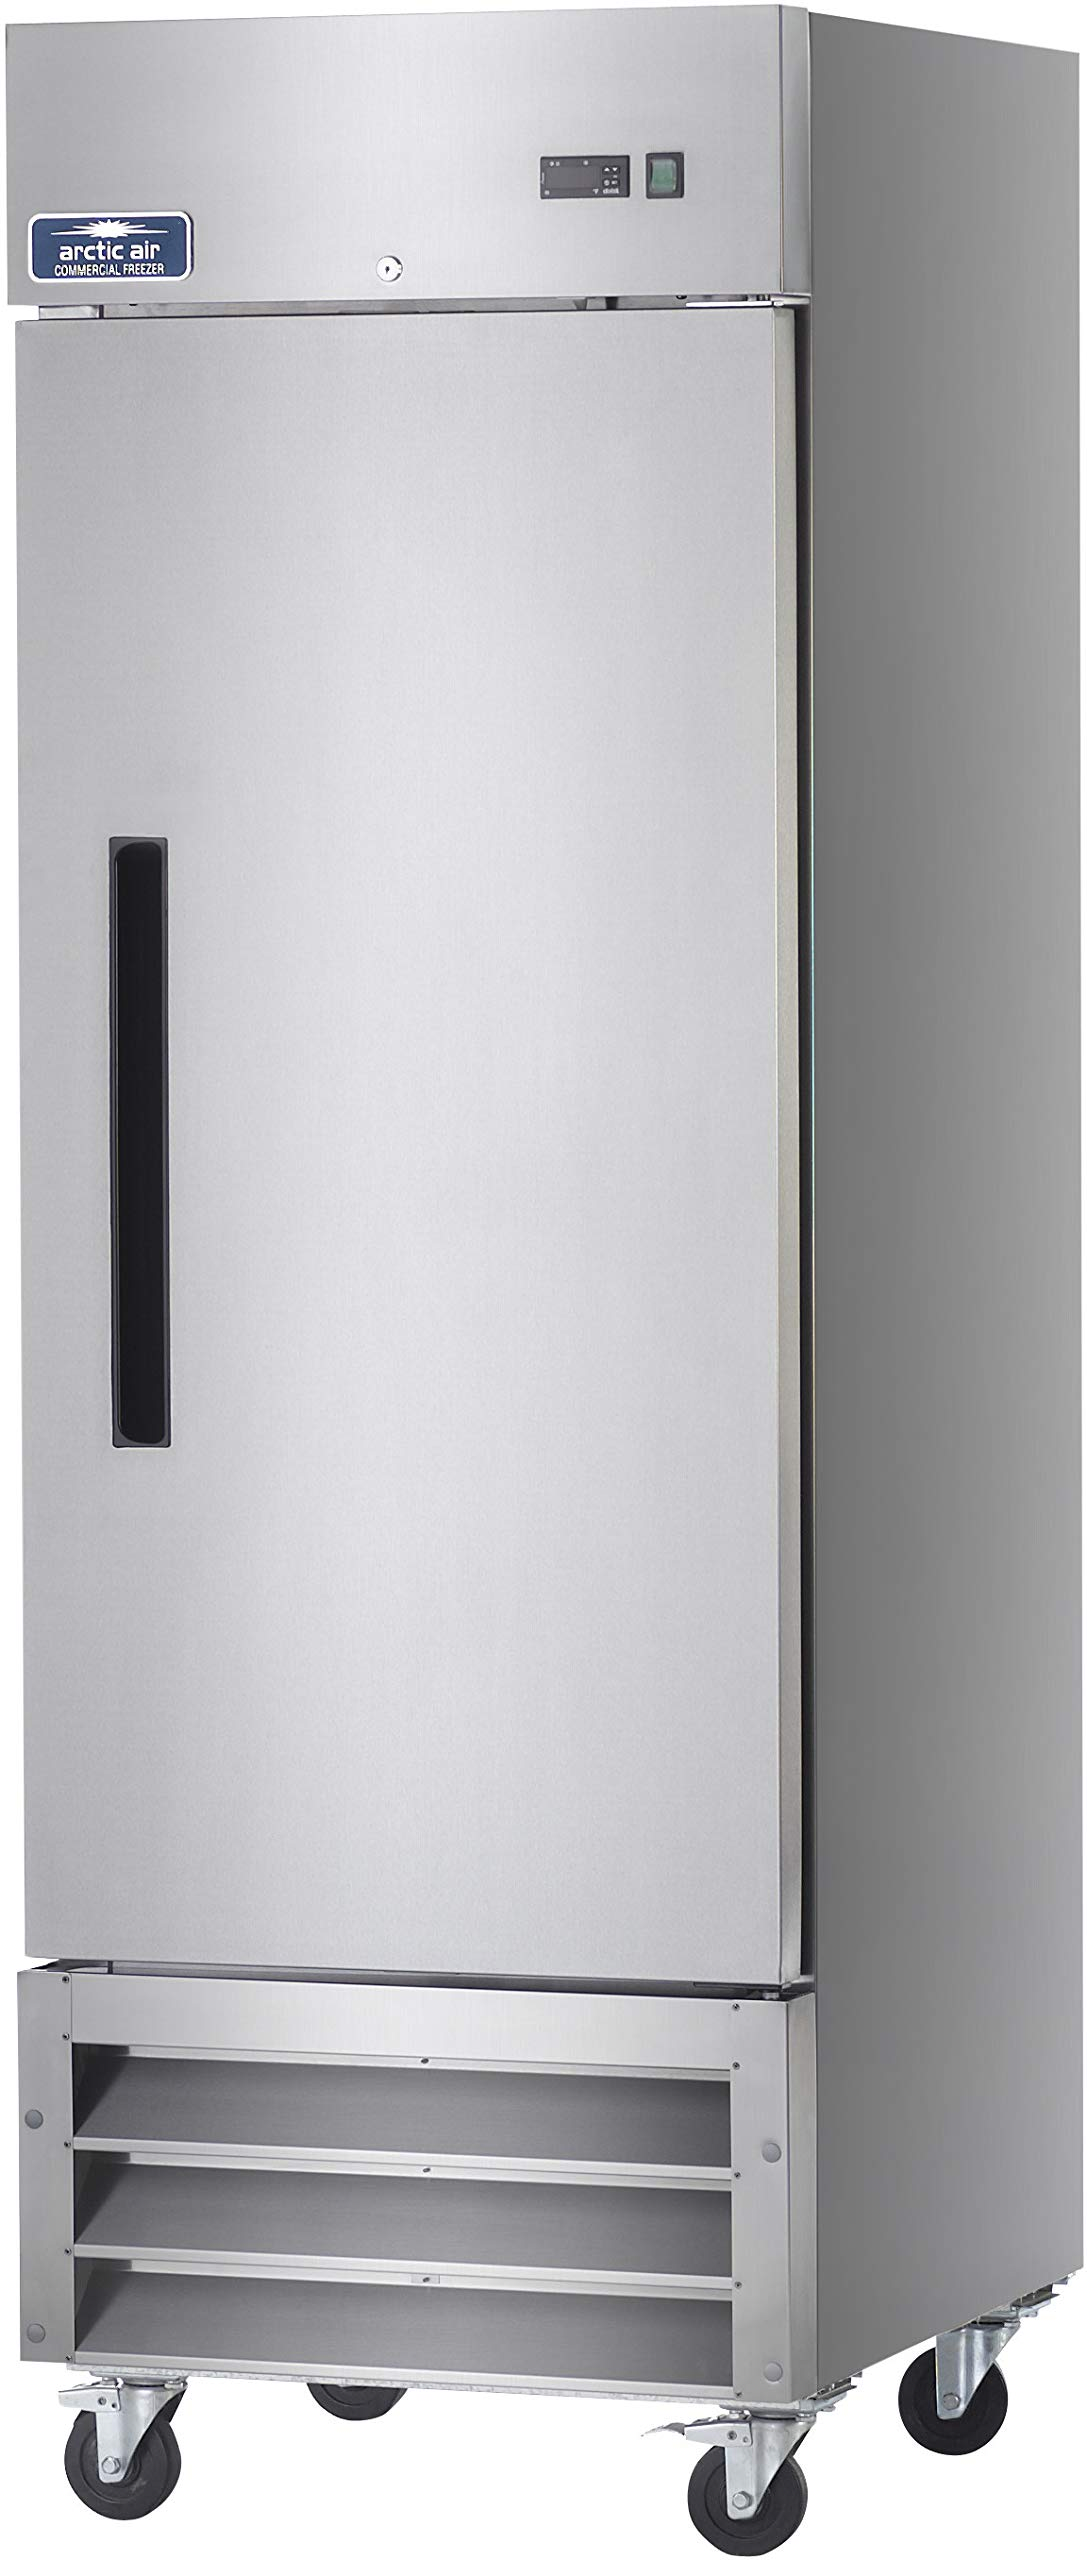 Arctic Air AR23 26 3/4'' One Section Reach-in Commercial Refrigerator - 23 cu. ft. by Arctic Air